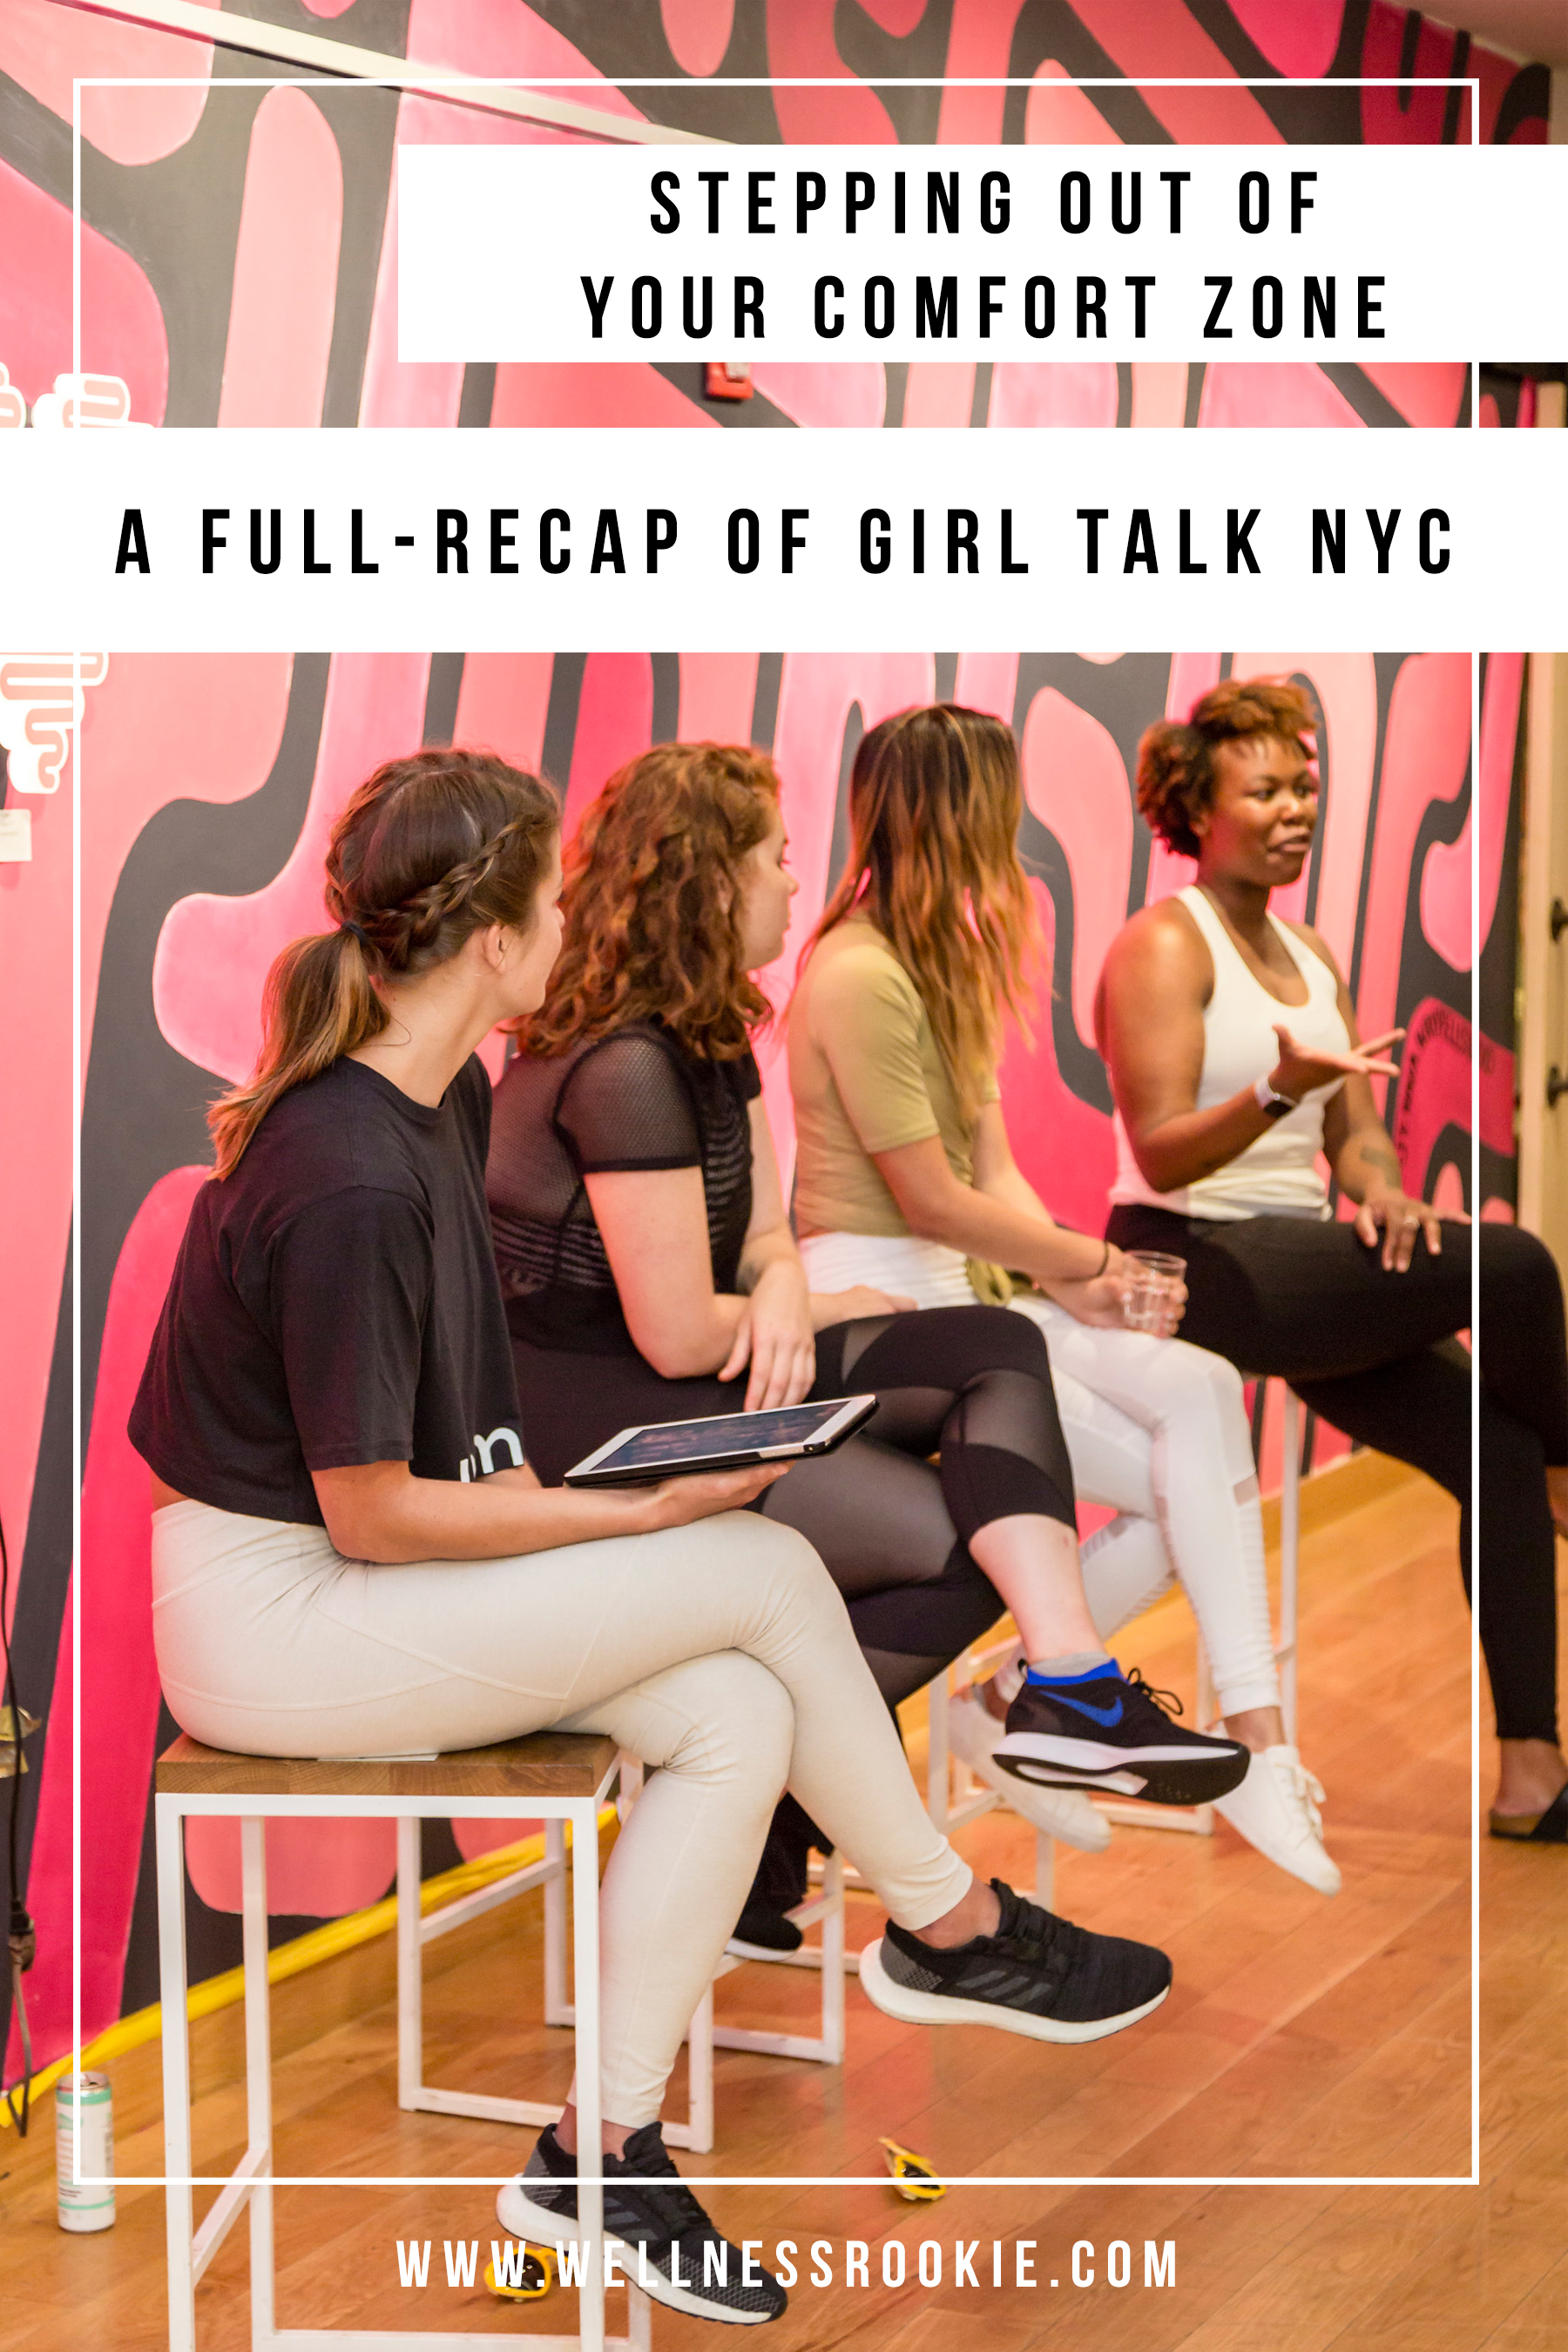 a day of wellness, connection, and community - a full recap of girl talk nyc